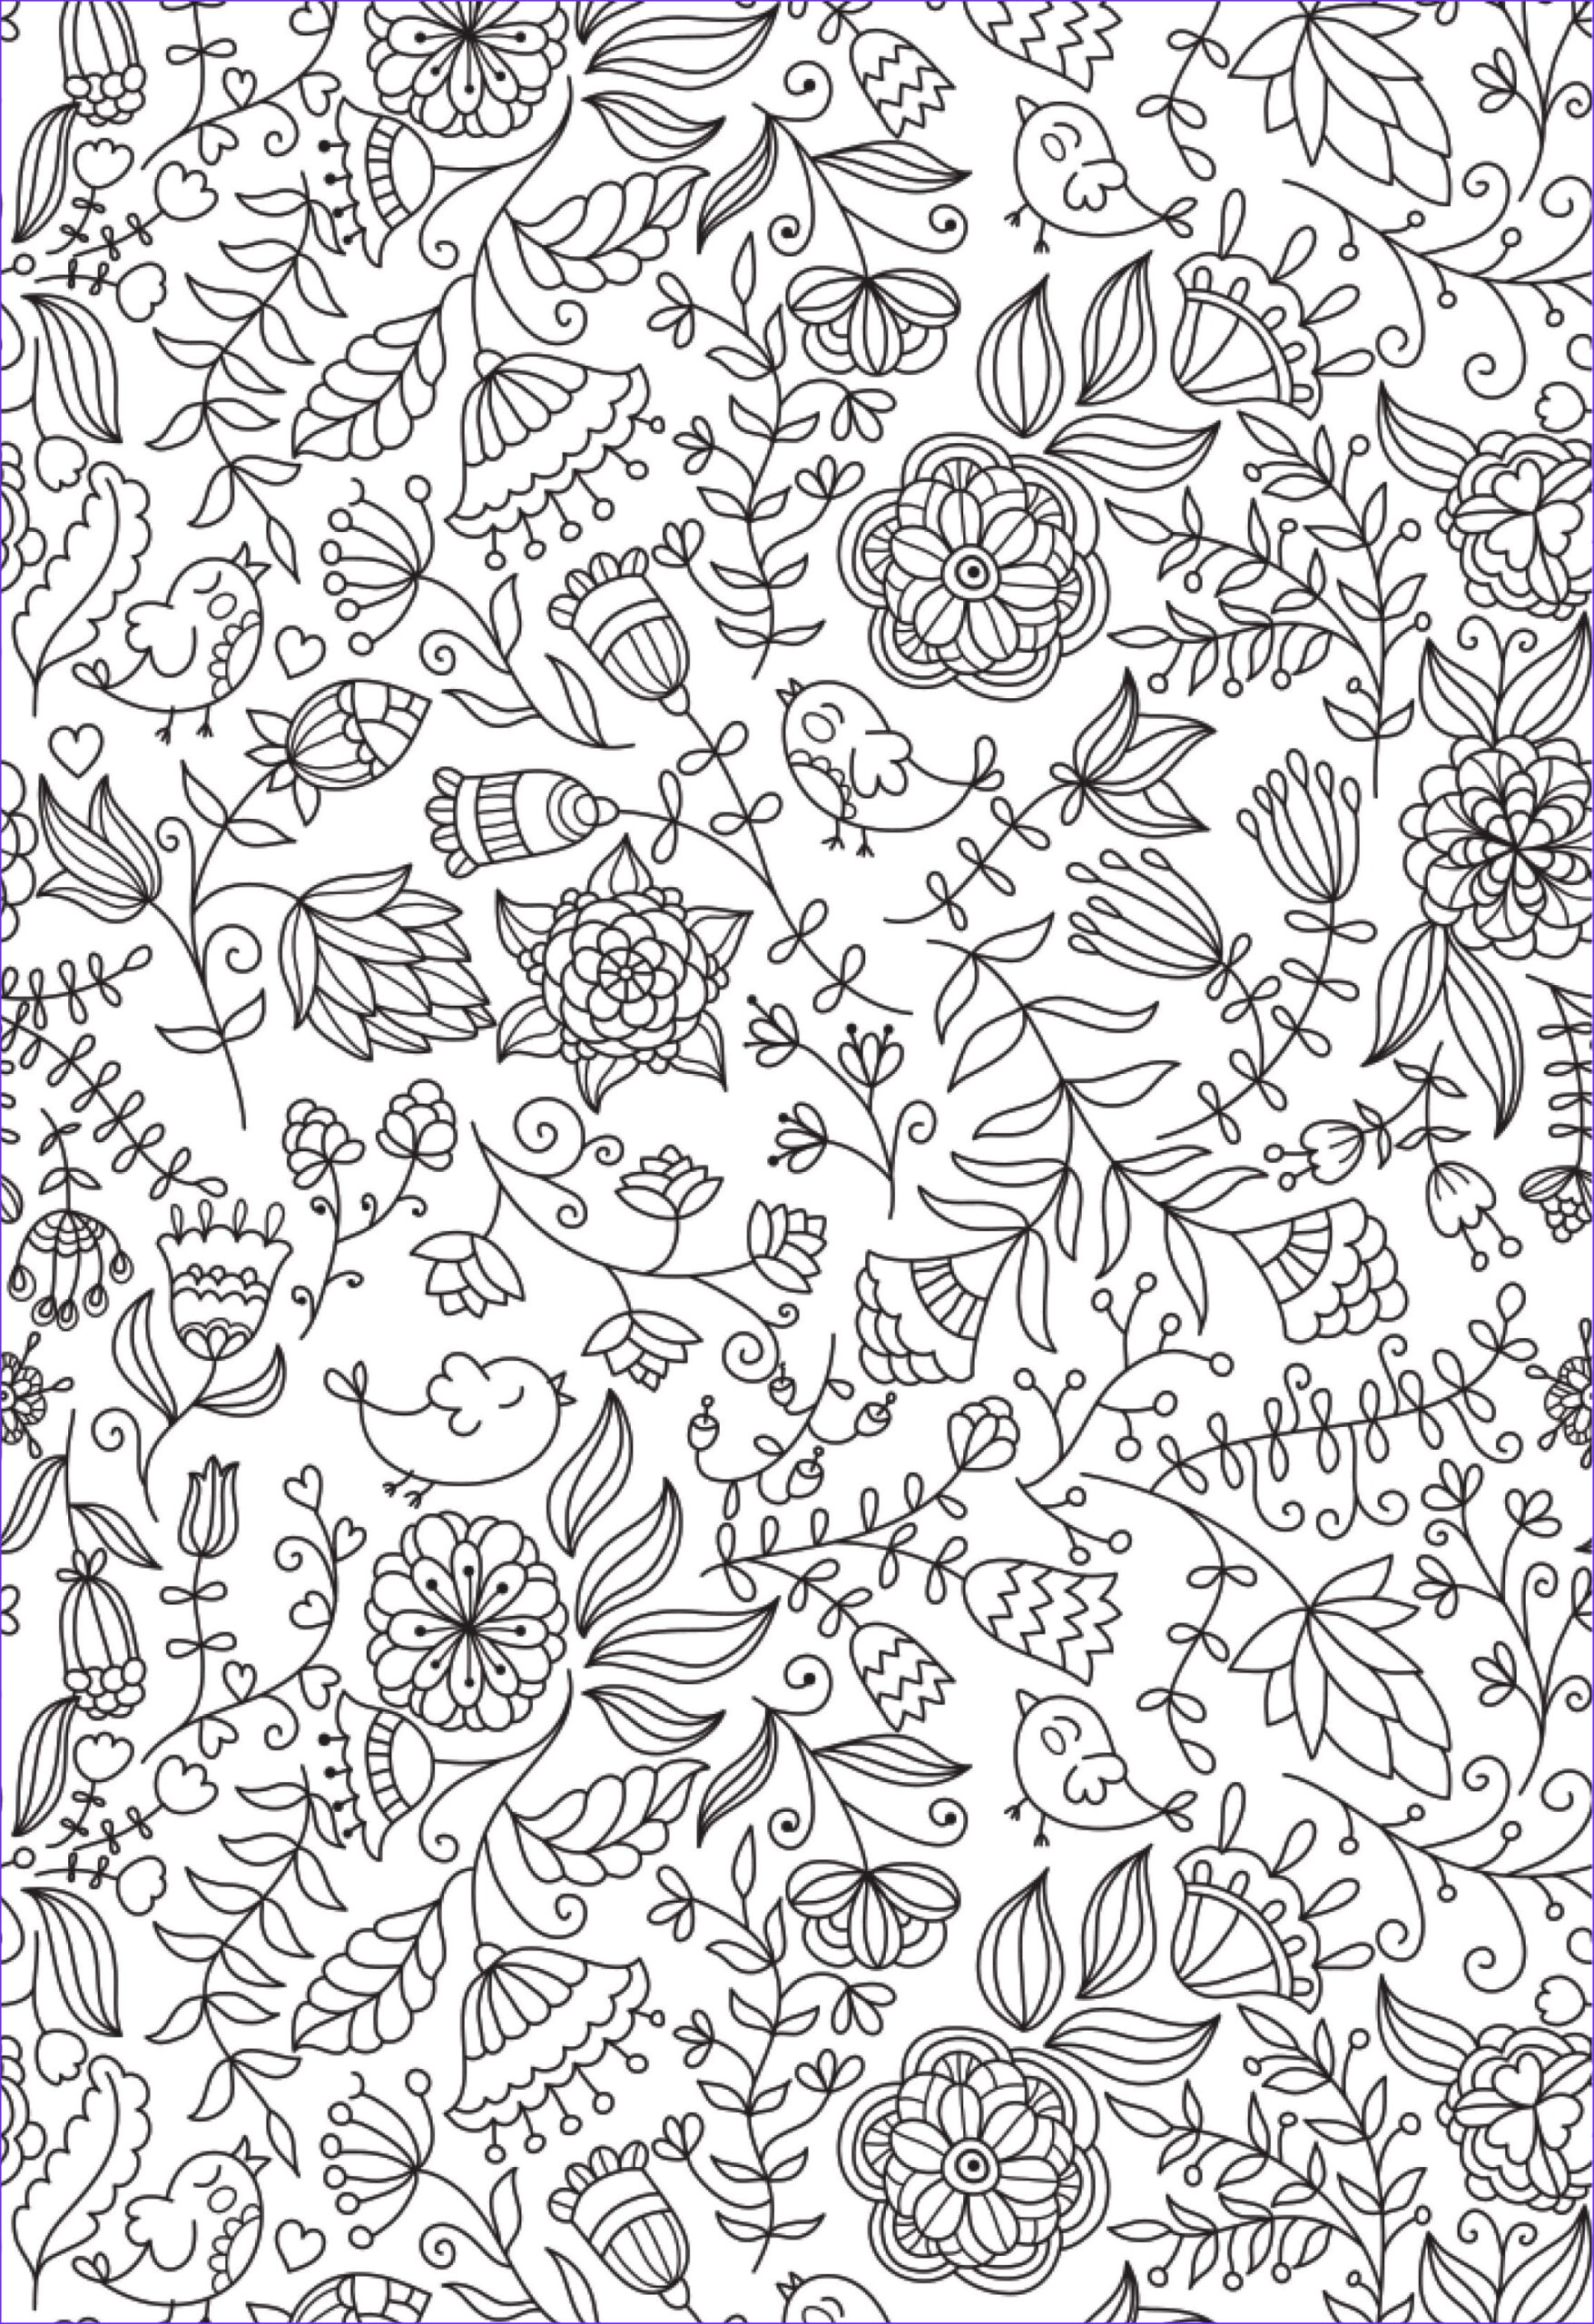 Adult Coloring Pages Patterns New Photography We Ve Fallen In Love with This Beautiful Colouring Design